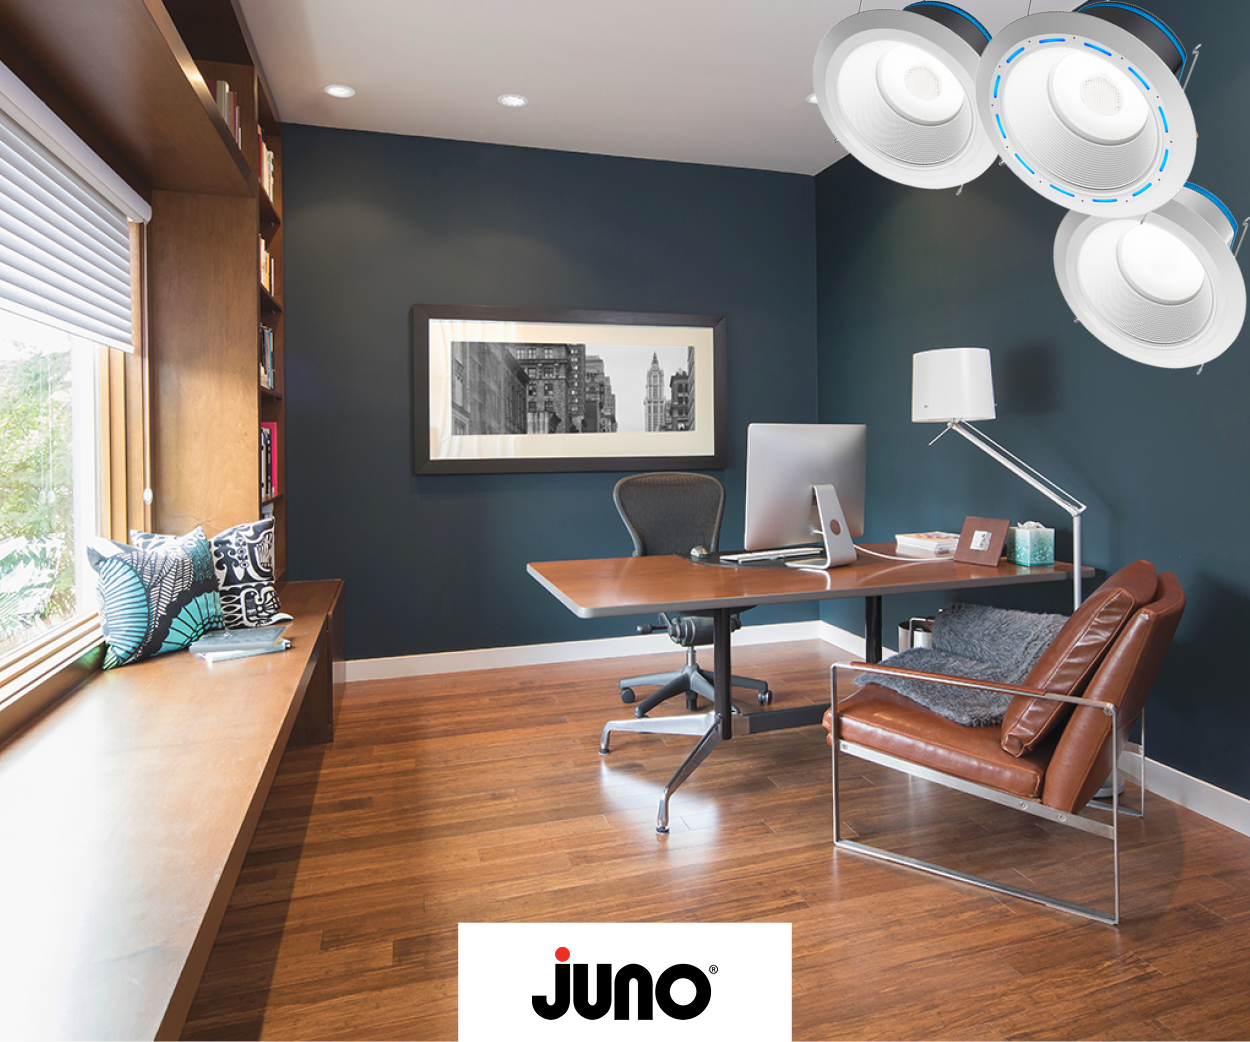 Juno AI Smart Home Downlights